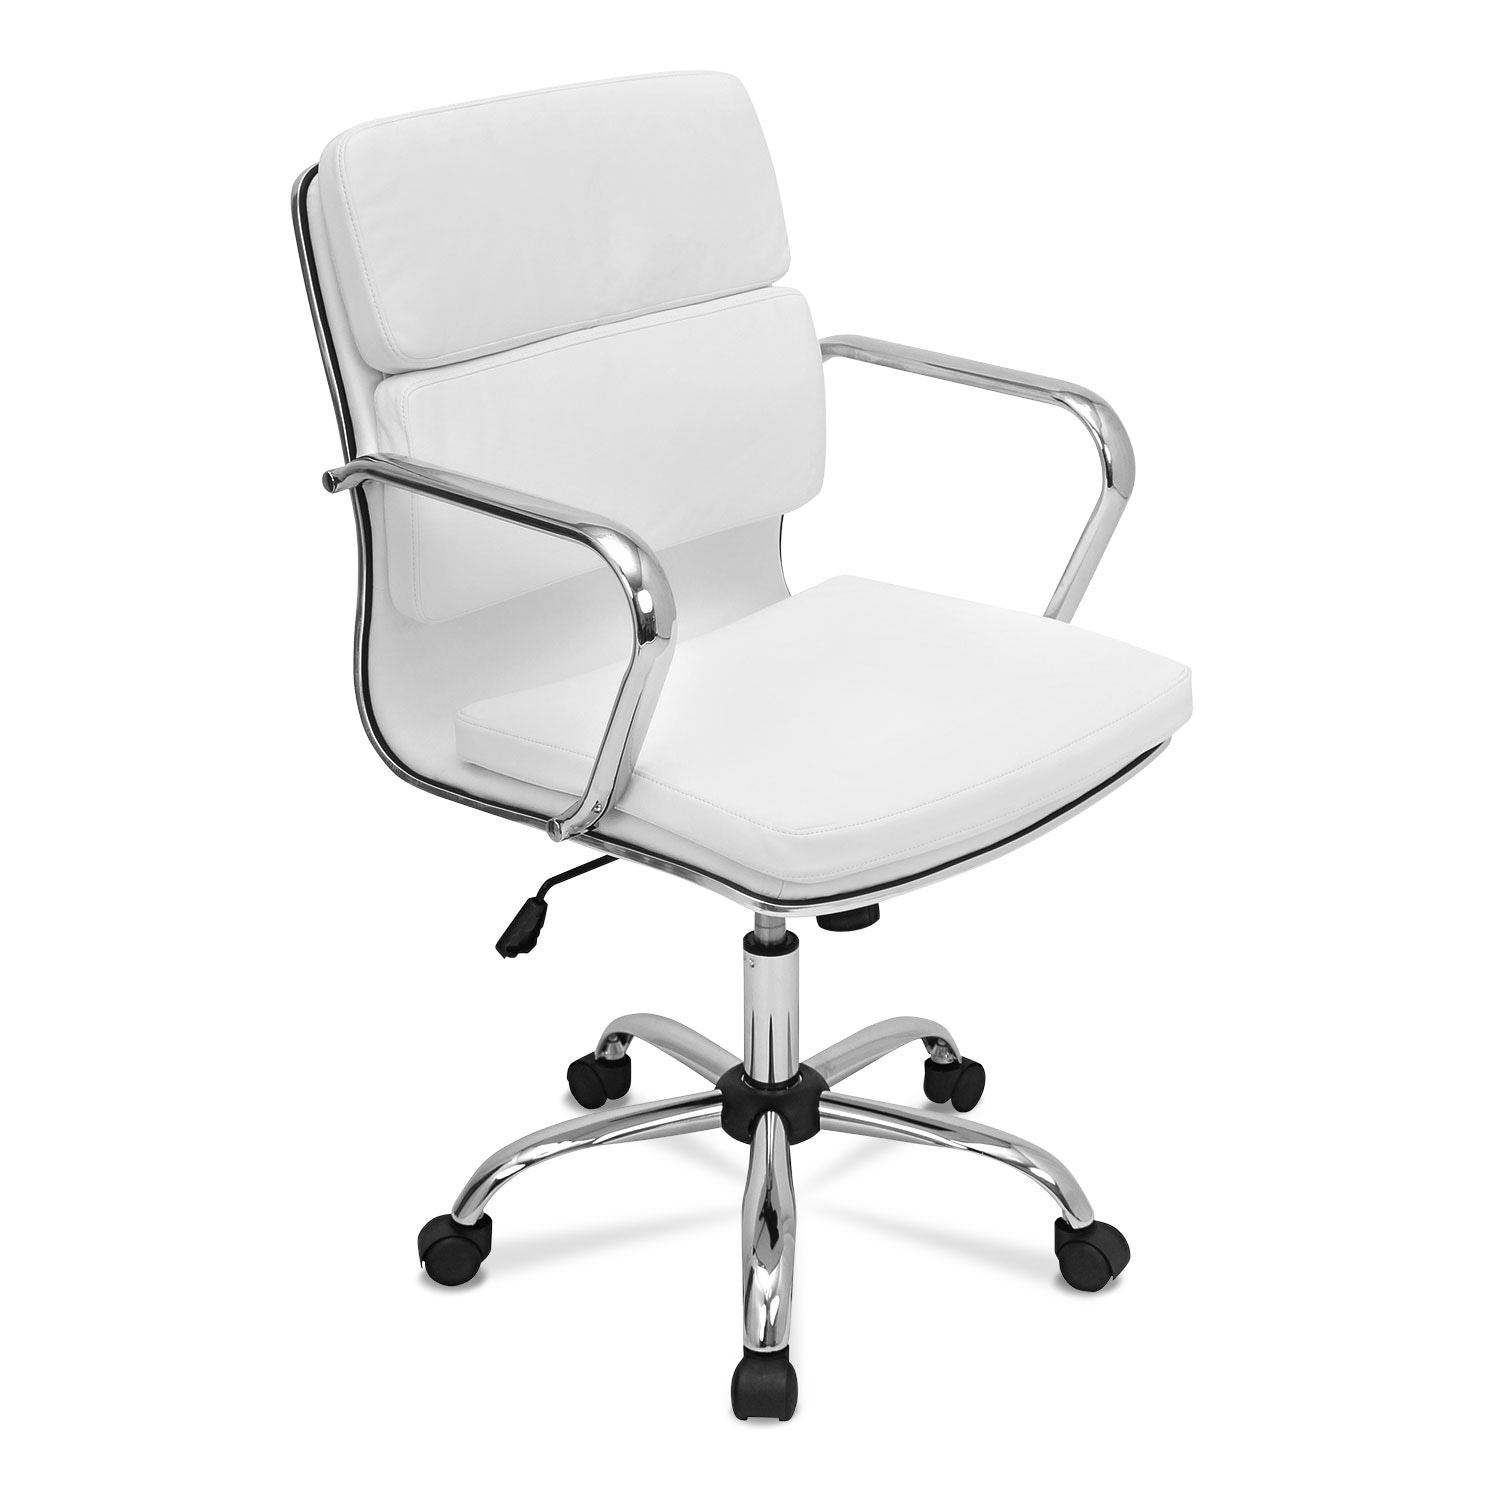 Home Office Furniture - Oscar Office Chair - White